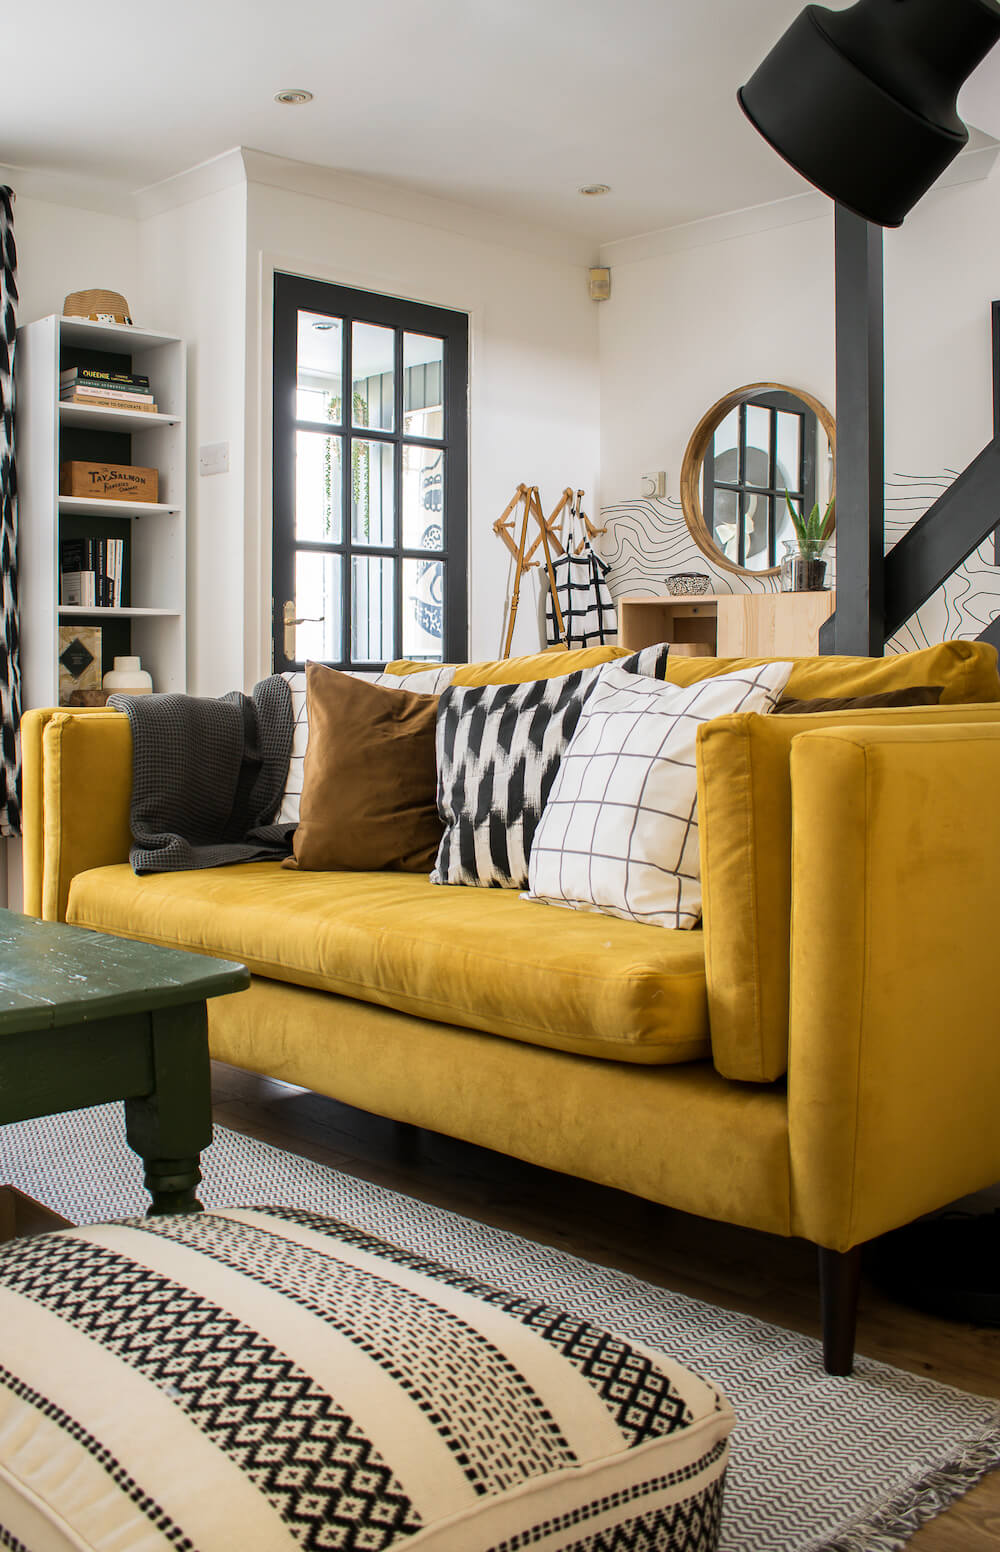 Spring living room tour with yellow sofa and DIY cushions